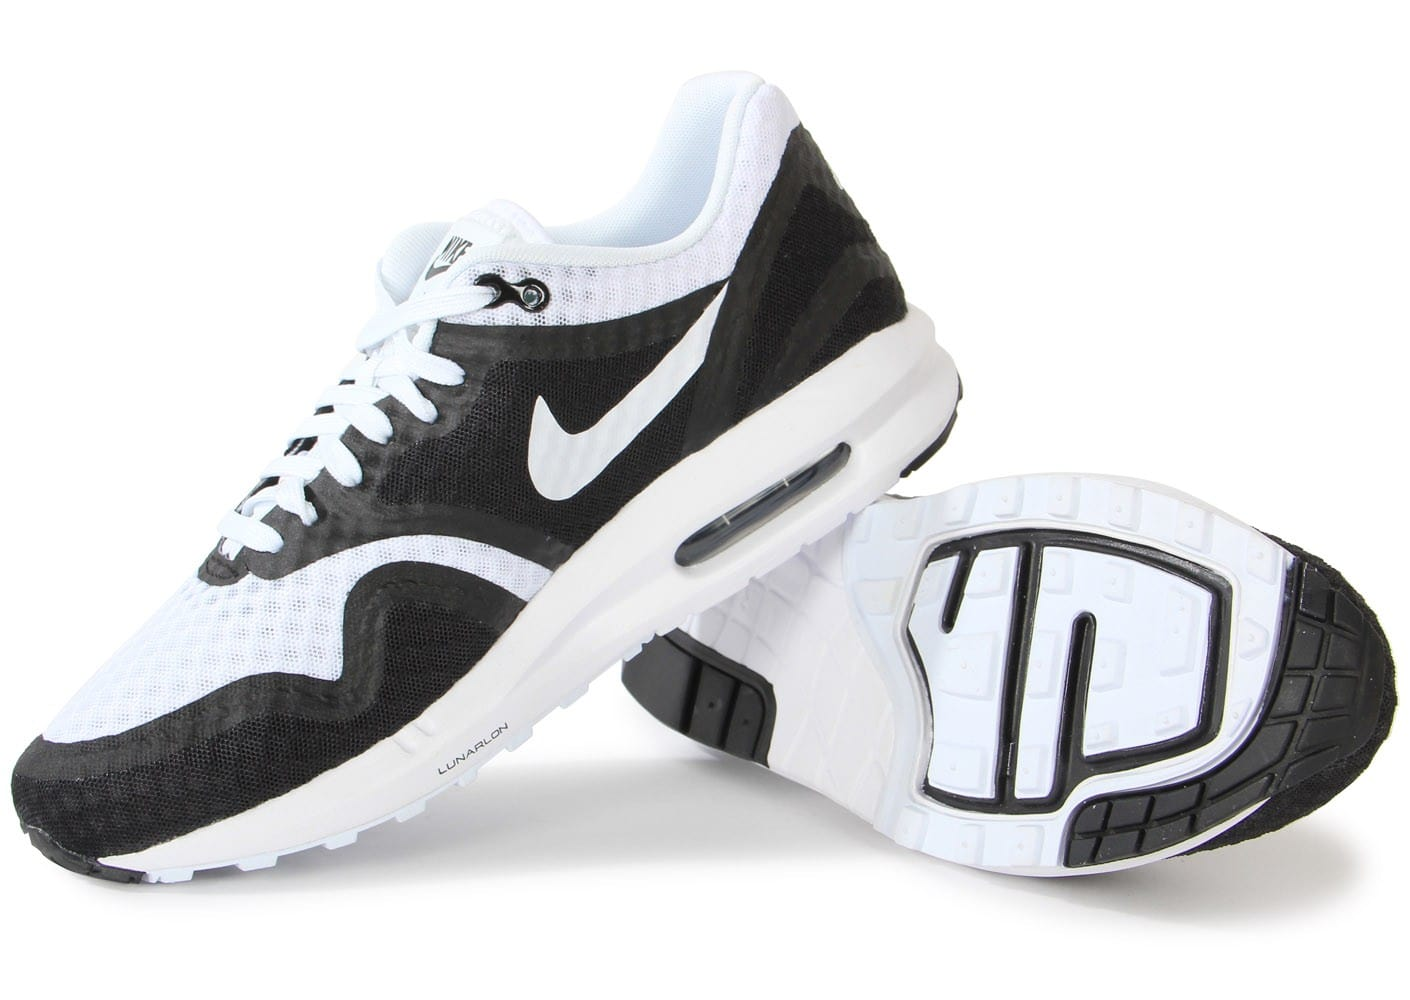 Discussion on this topic: Nike Air Max Lunar1 Trainers, nike-air-max-lunar1-trainers/